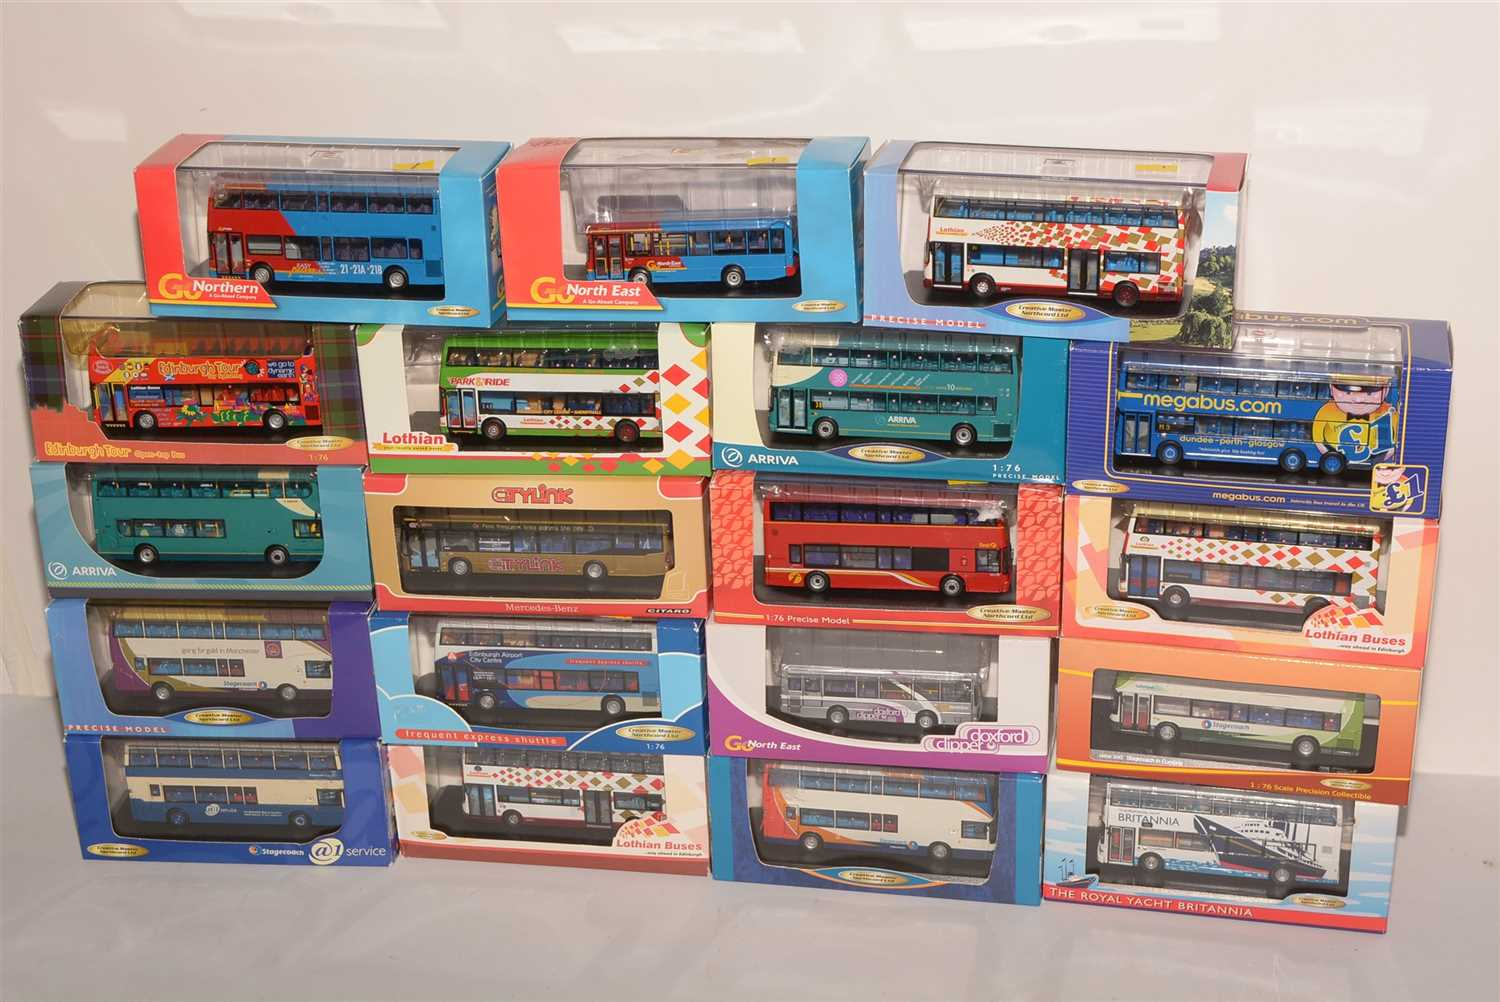 Lot 1251-Die-cast model buses by Creative Master